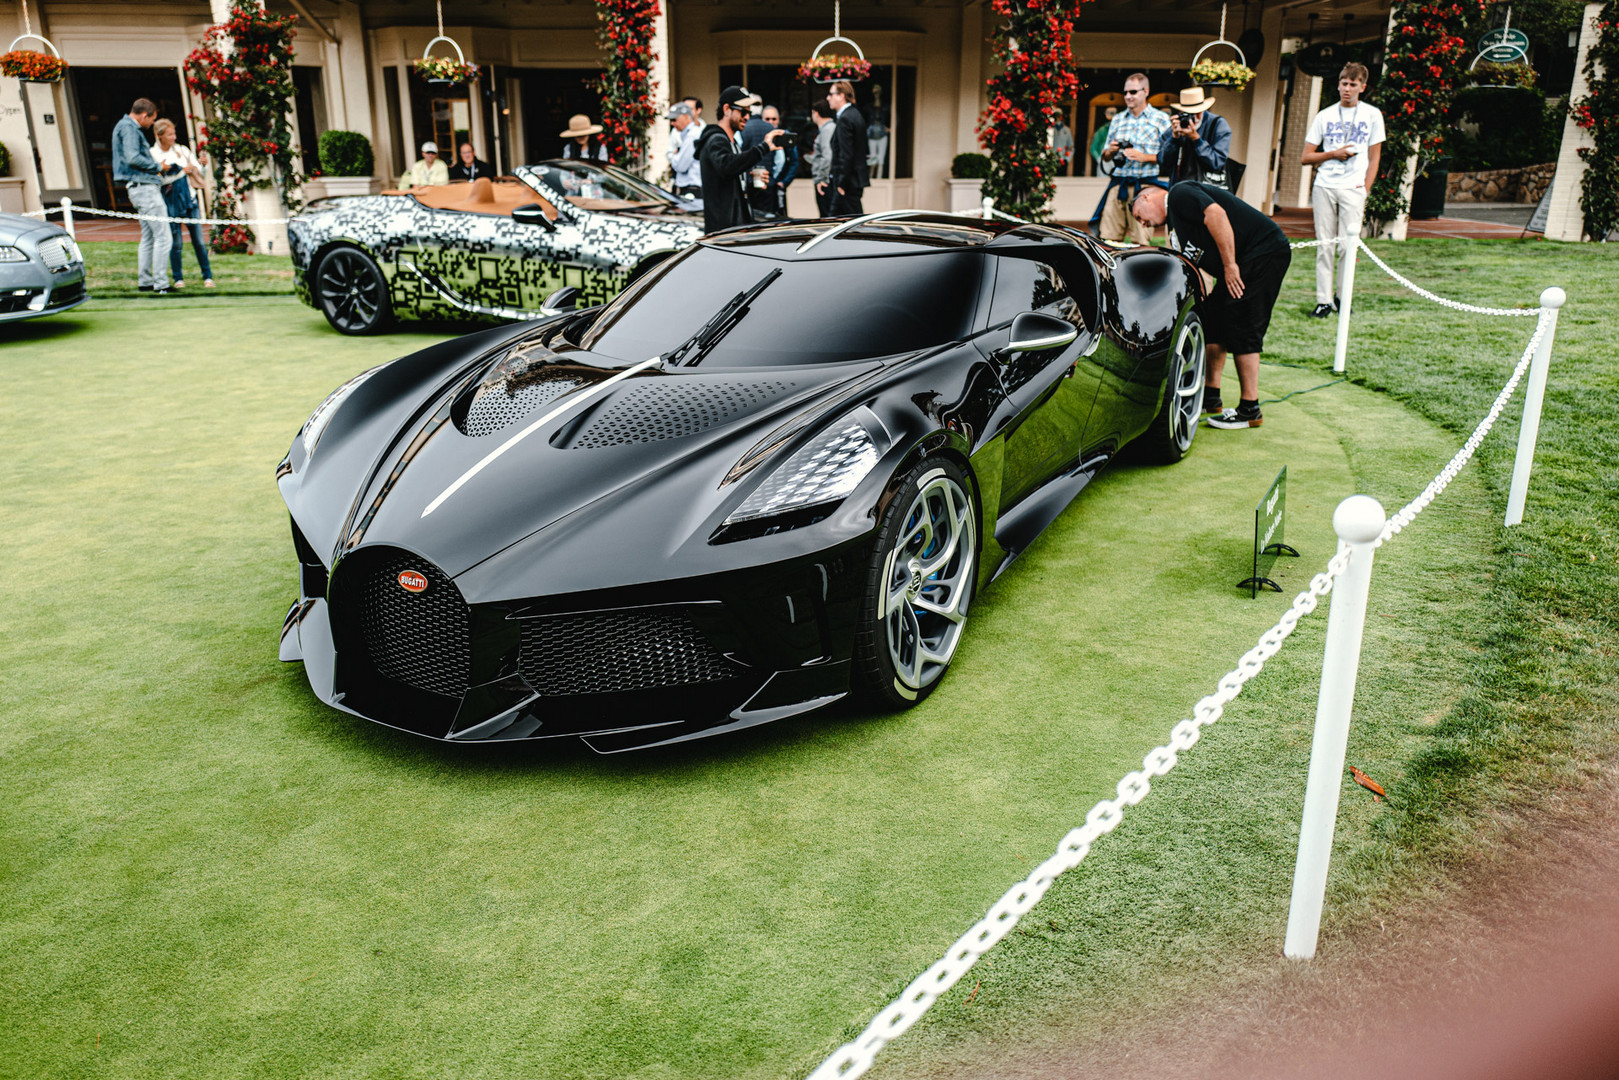 Bugatti Says No to Special One-Off Projects